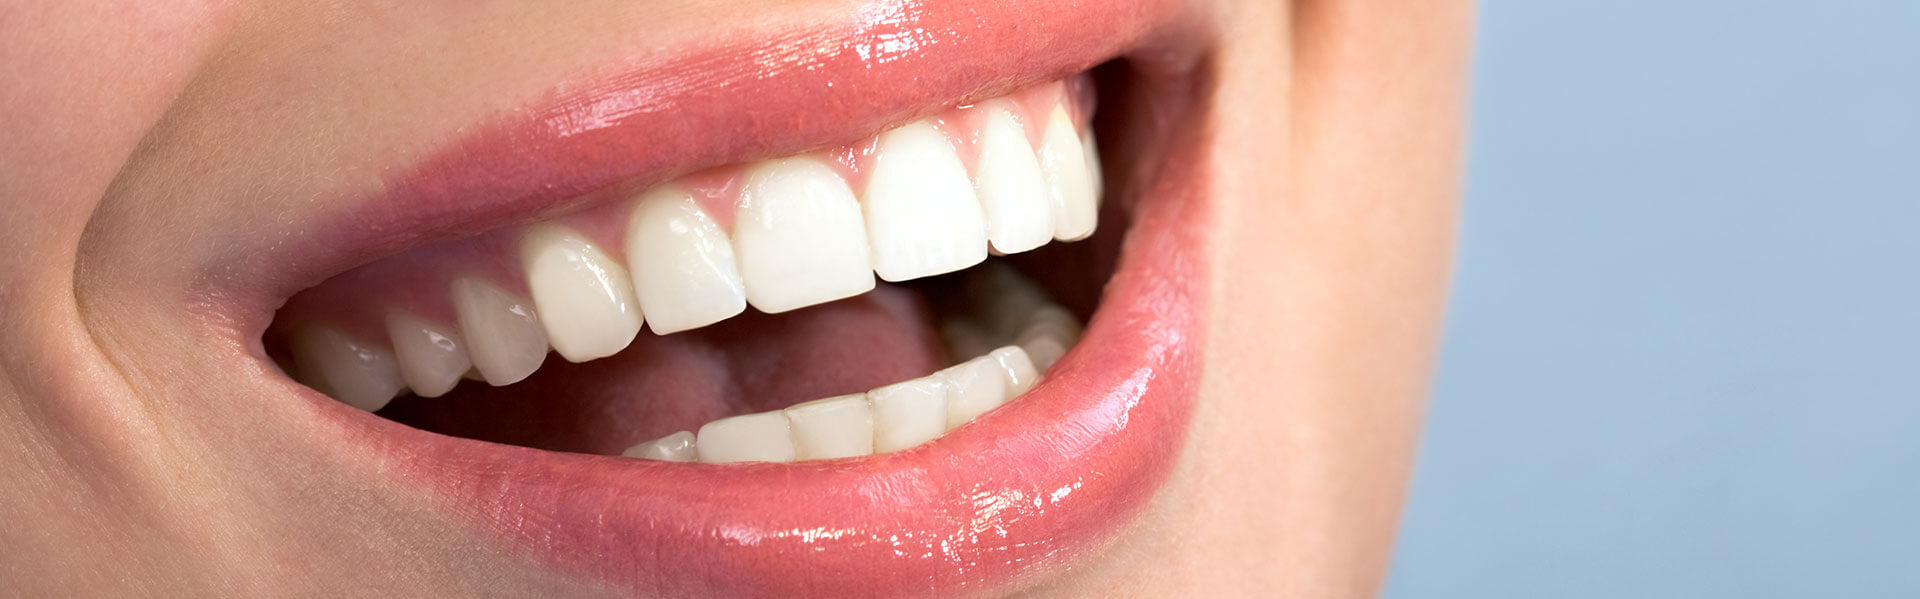 Teeth Whitening Treatment in Pearland